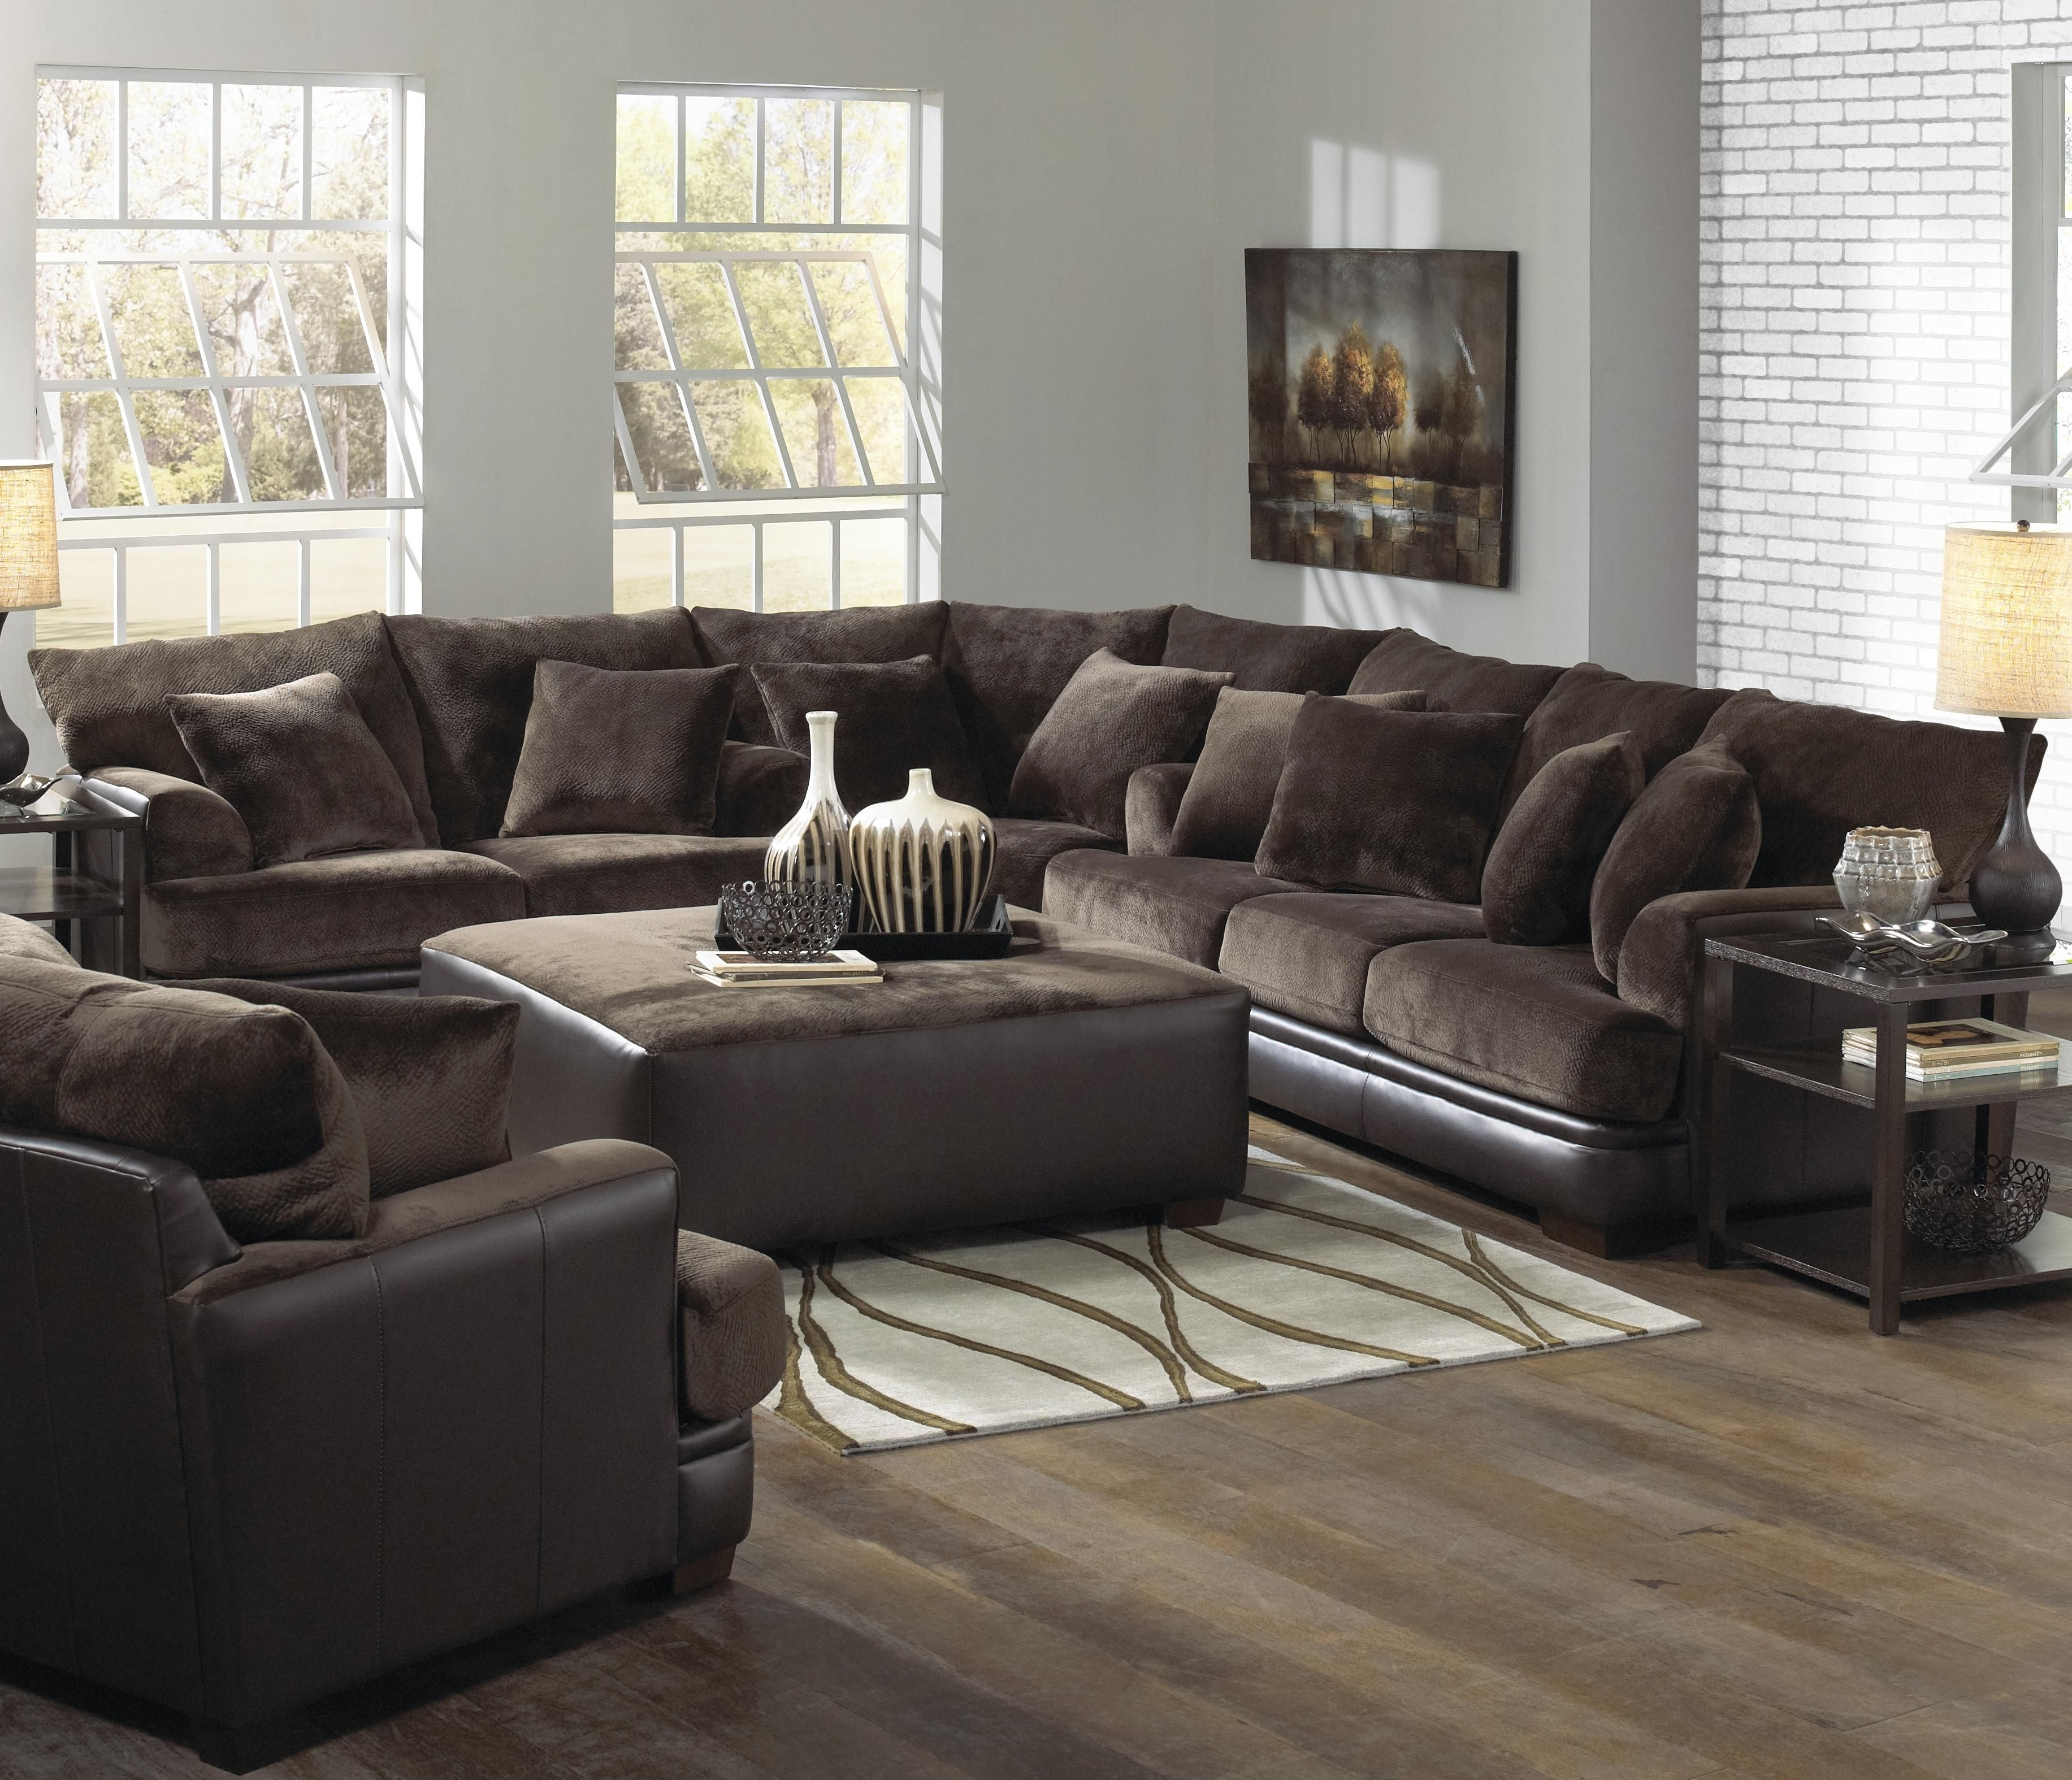 Famous Grande Prairie Ab Sectional Sofas Regarding Beautiful Sectional Sofa For Sale (35 Photos) (View 4 of 15)